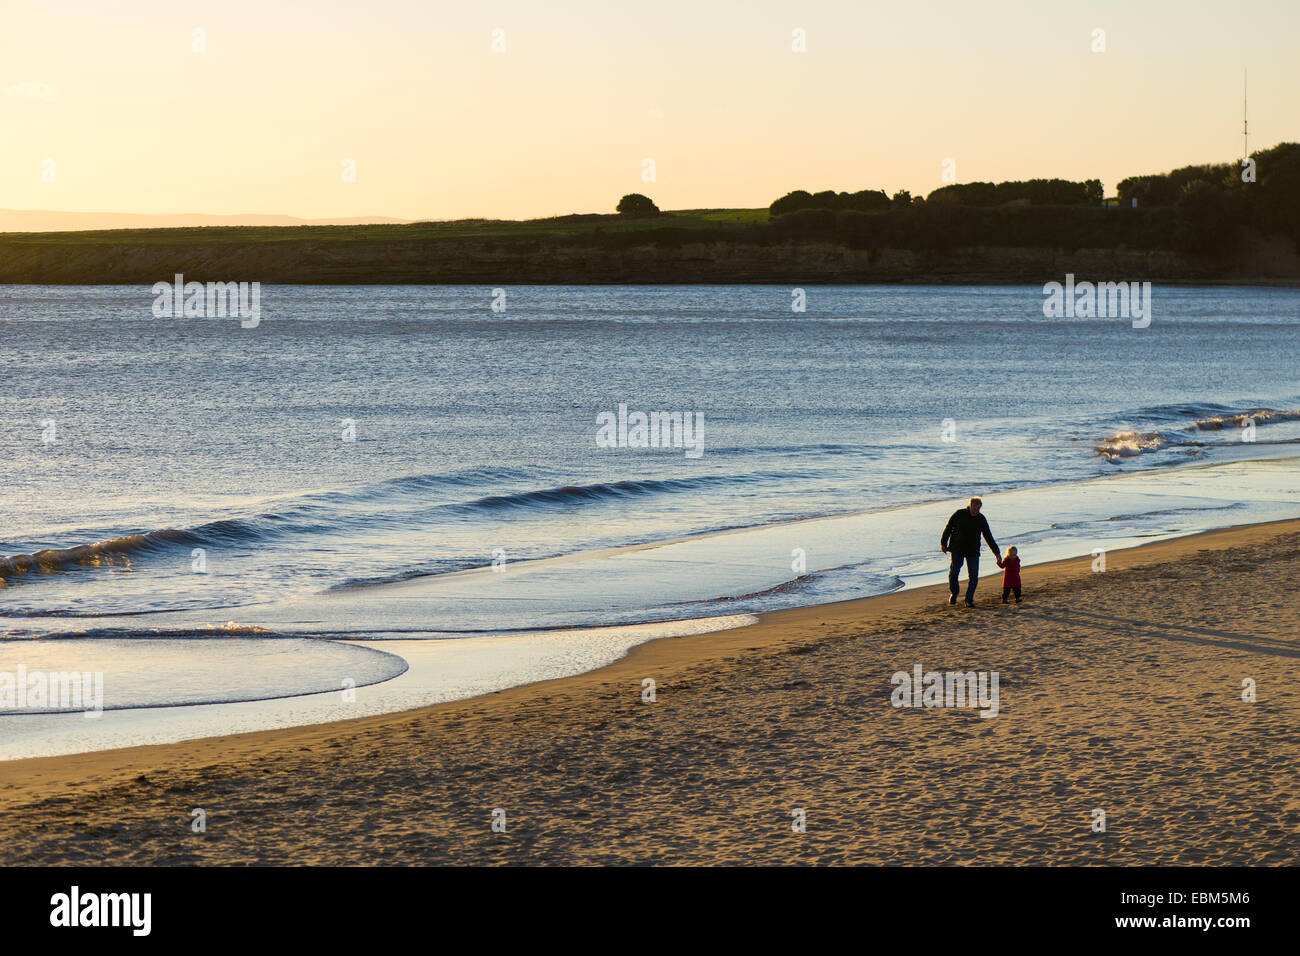 People walk along the beach in Barry Island, Wales, UK, at sunset. Stock Photo